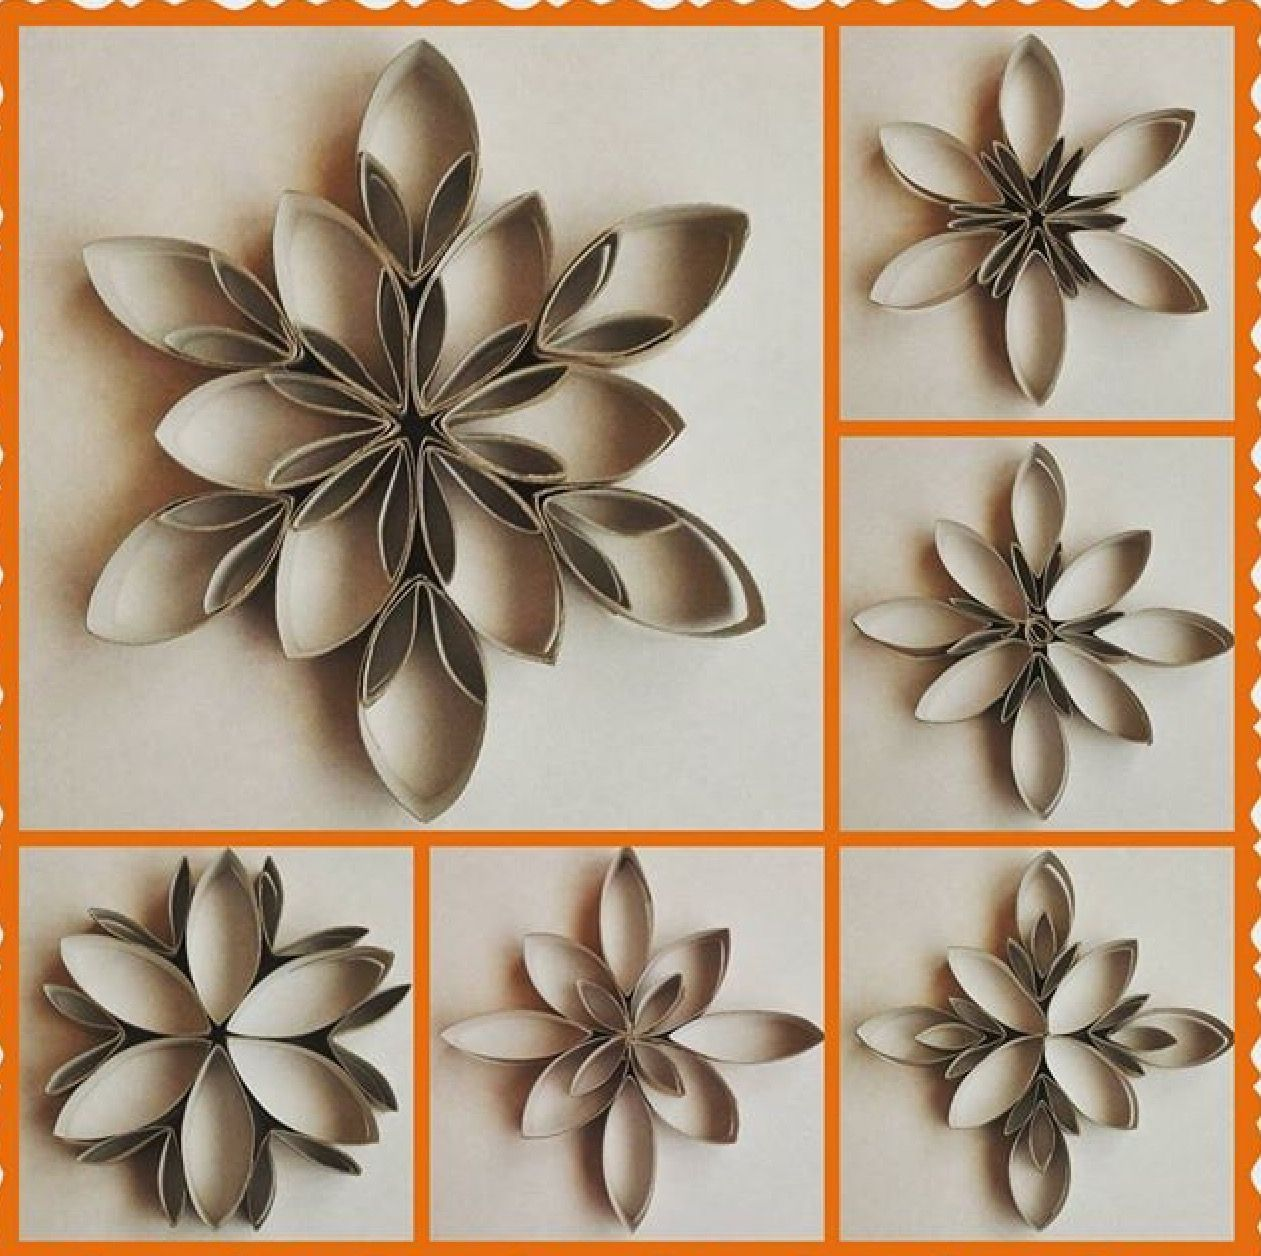 Pin by reema dsouza on christmas pinterest quilling paper paper roll crafts toilet paper rolls christmas tree ornaments christmas ideas kid crafts quilling fun ideas upcycling origami jeuxipadfo Image collections